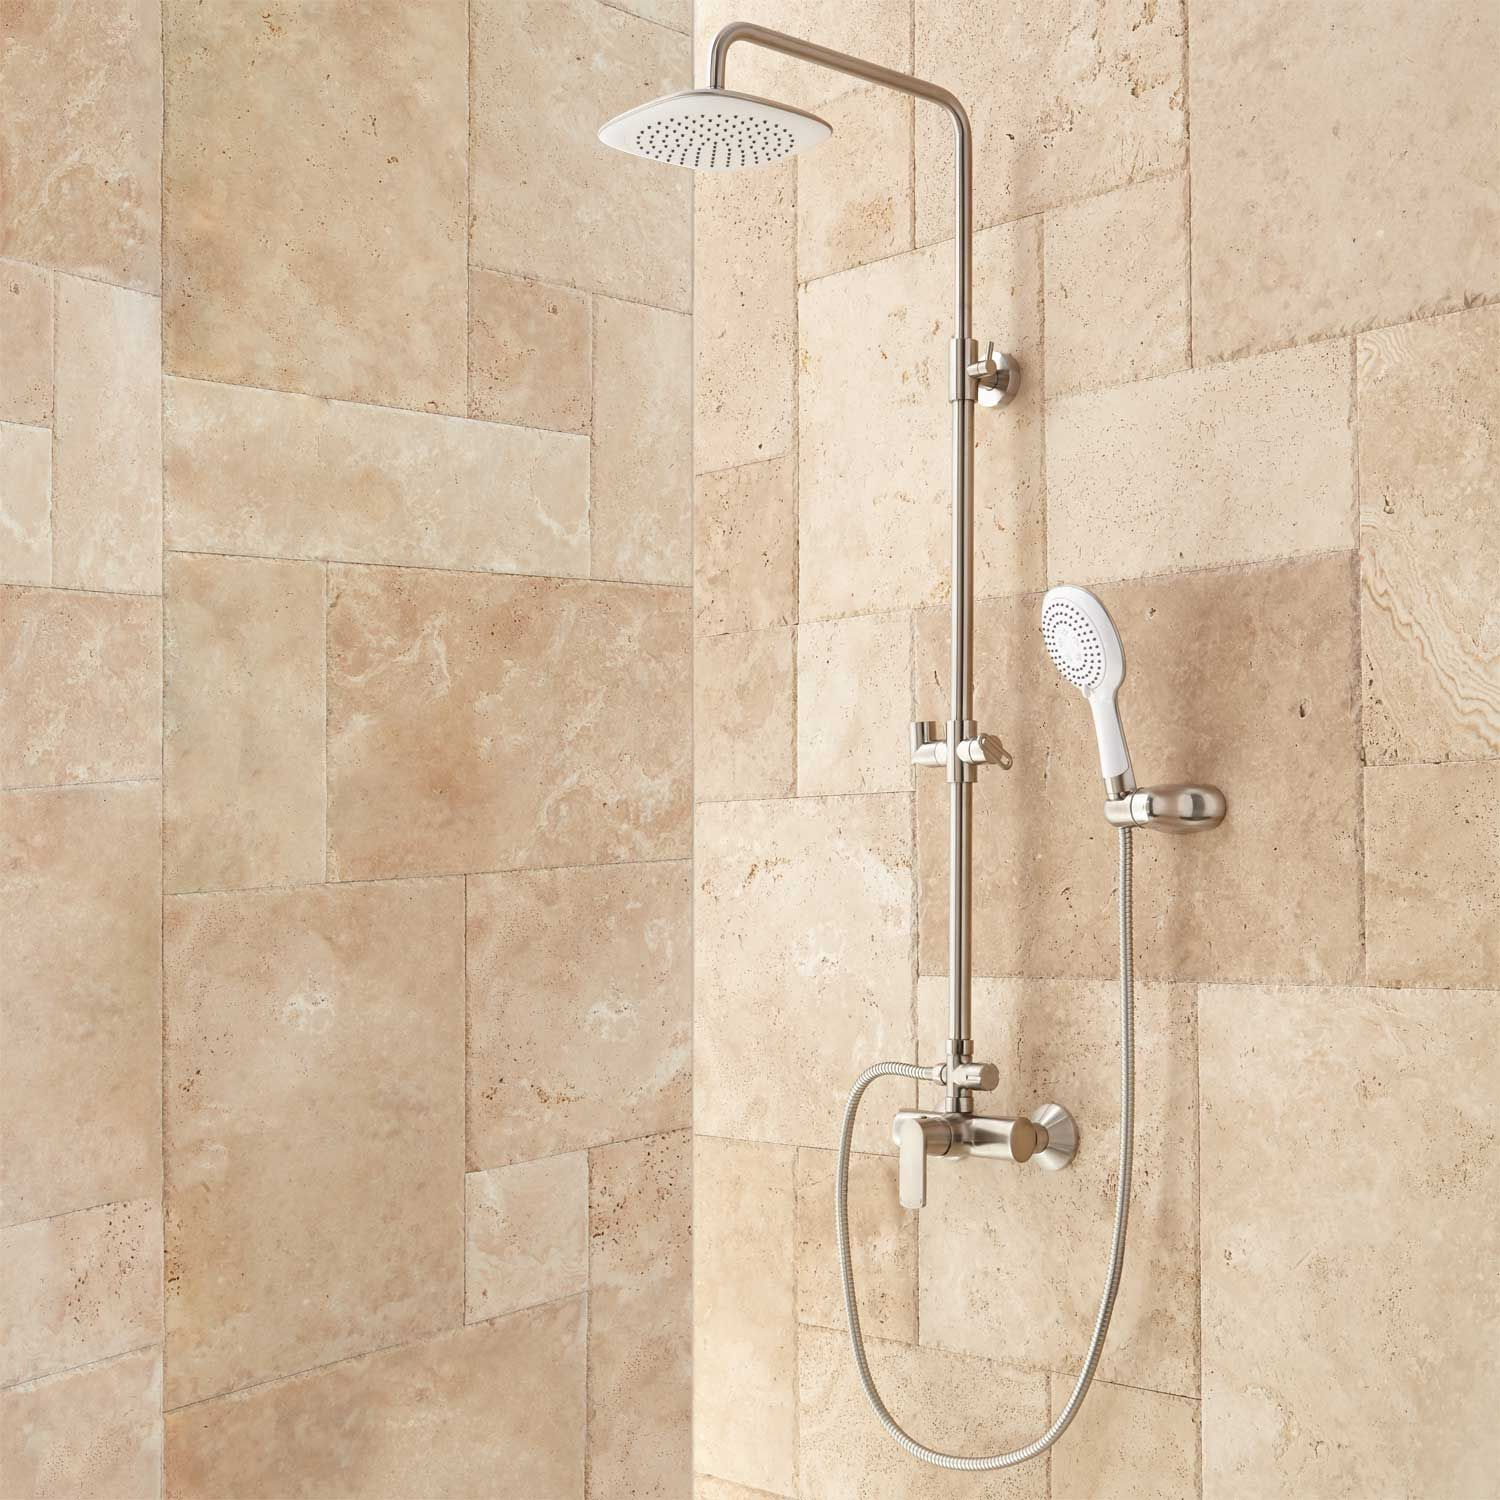 mayport exposed pipe shower showerhead and wand shower tub rh pinterest co uk